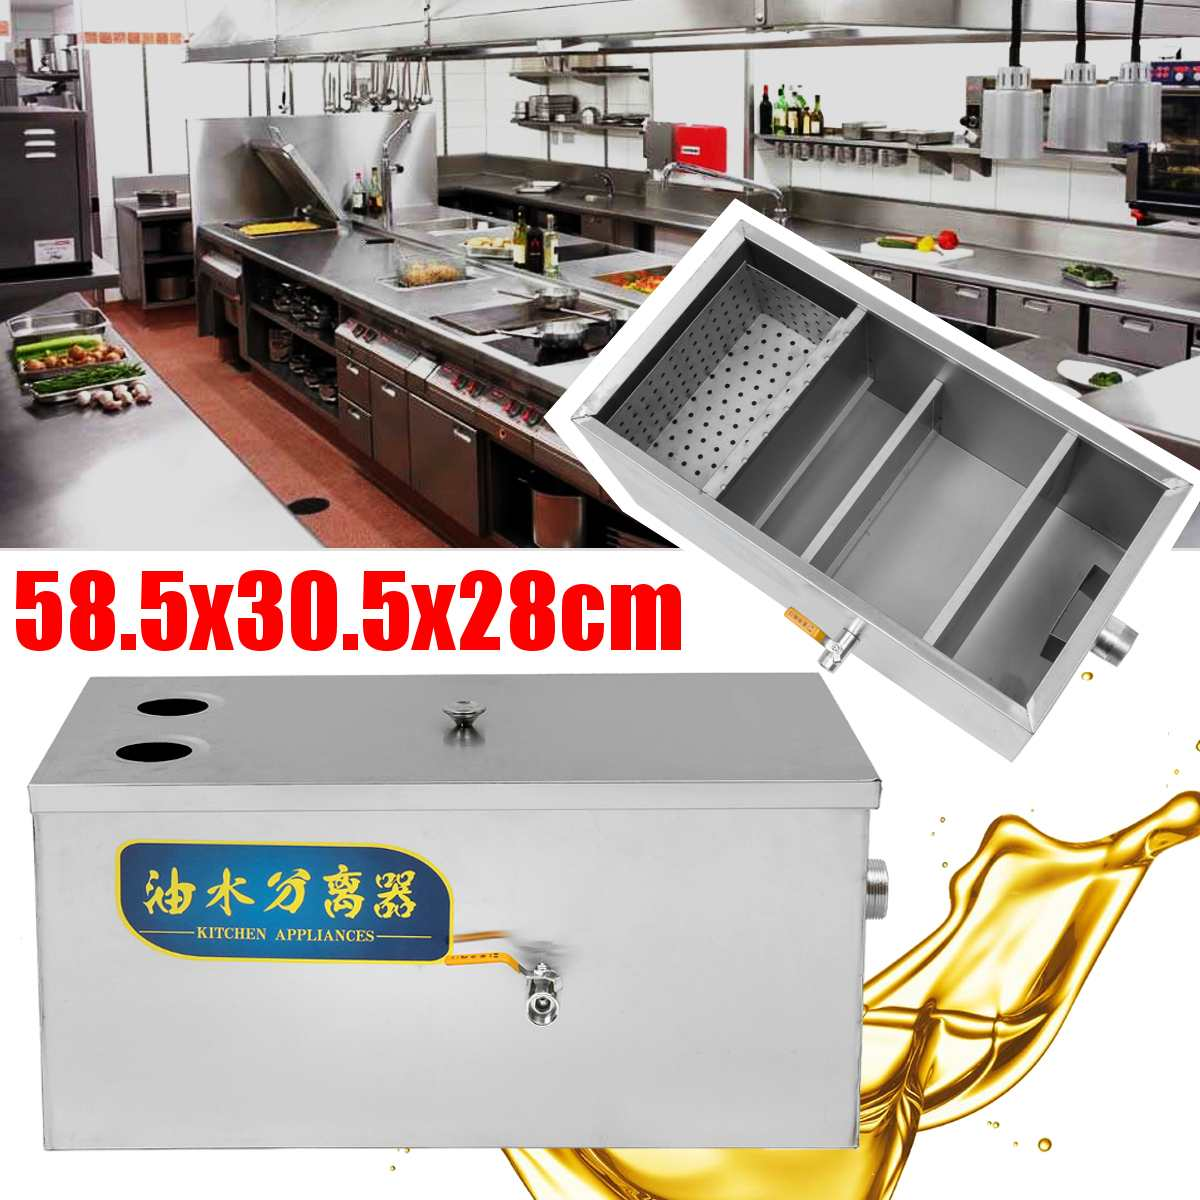 5000ml Large Grease Trap Stainless Steel Interceptor Thickened For Restaurant Kitchen Wastewater